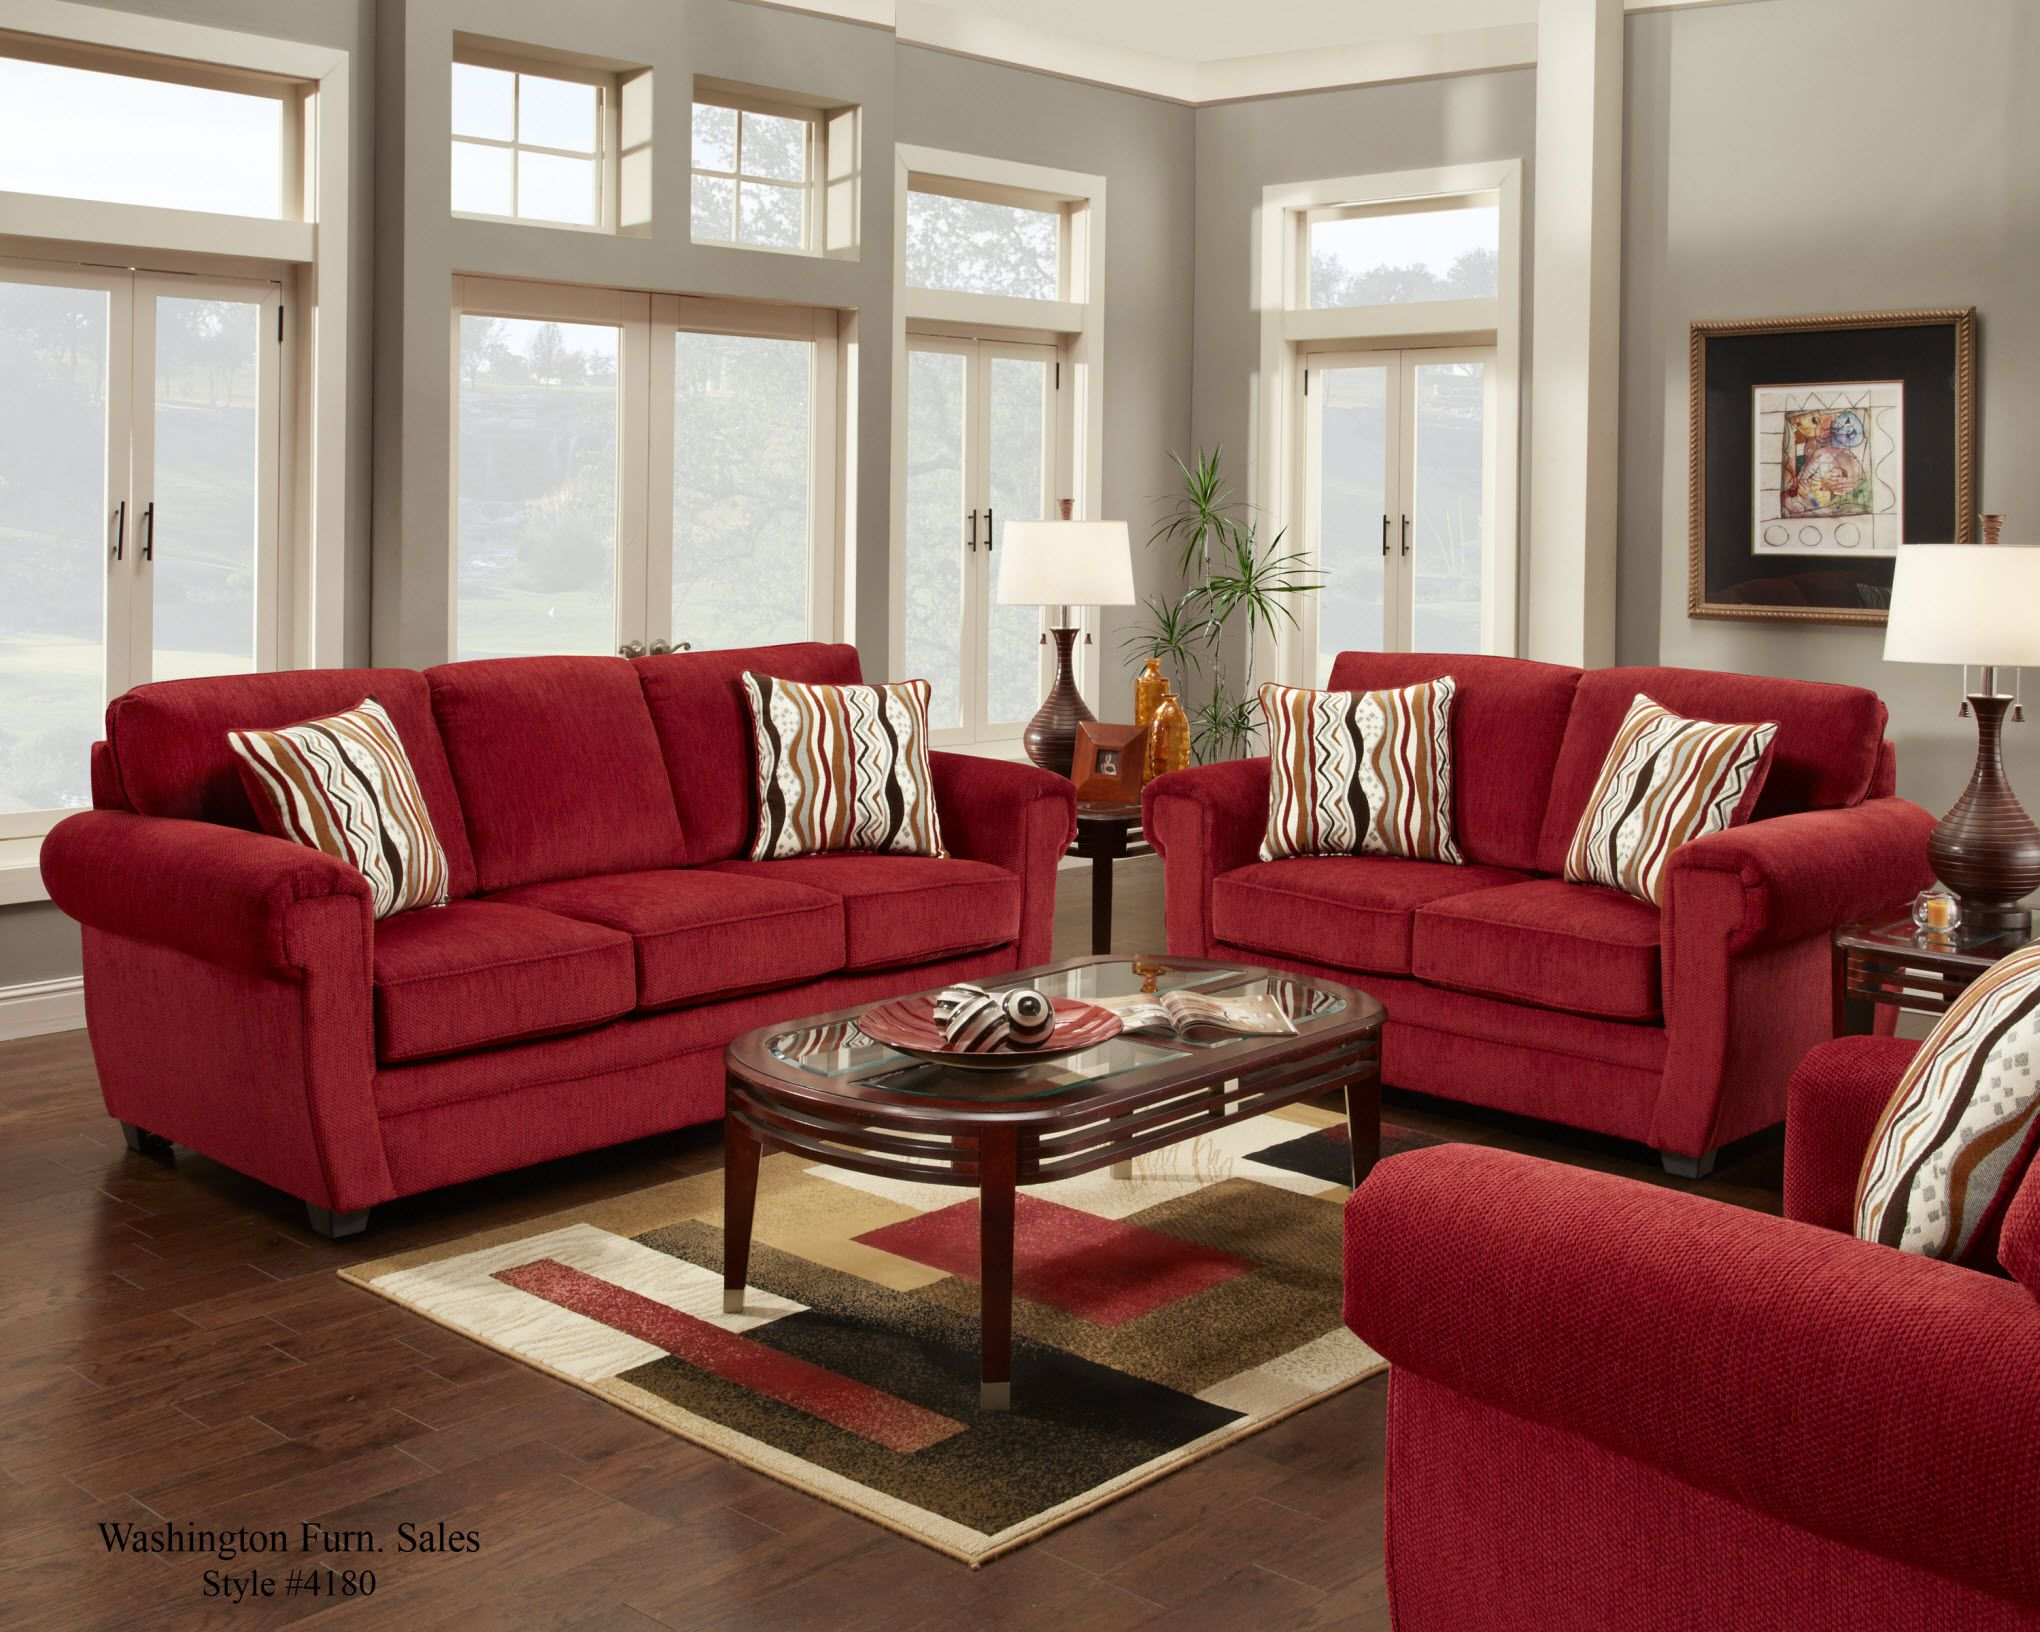 Tokeo La Picha How To Decorate With A Red Couch